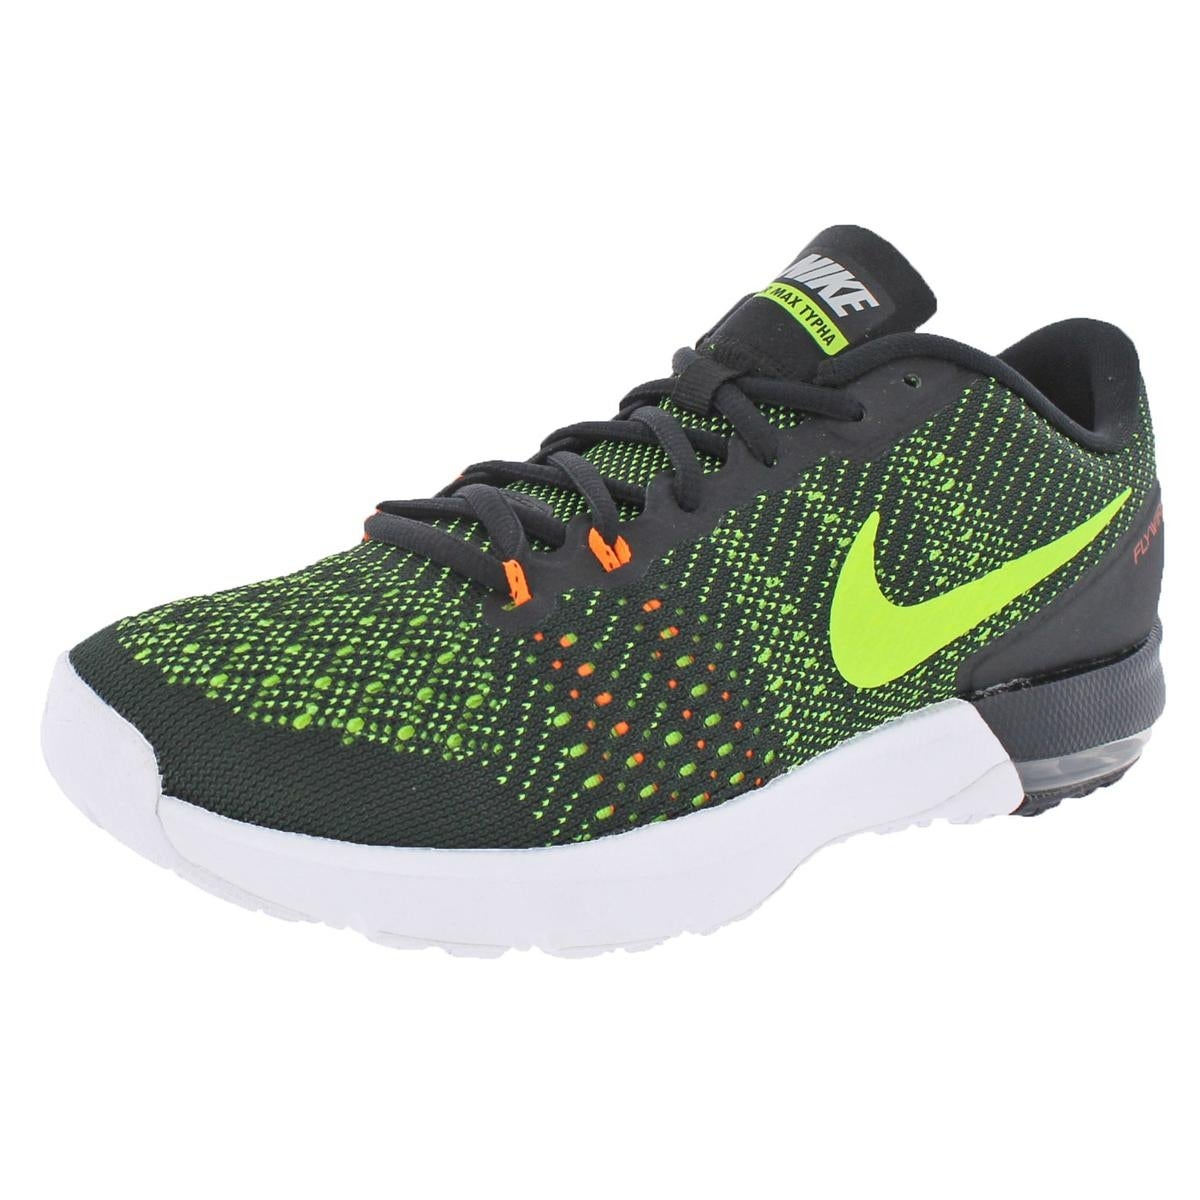 ... low price shop nike mens air max typha trainers training flywire free  shipping today overstock 21942194 76626fbe8